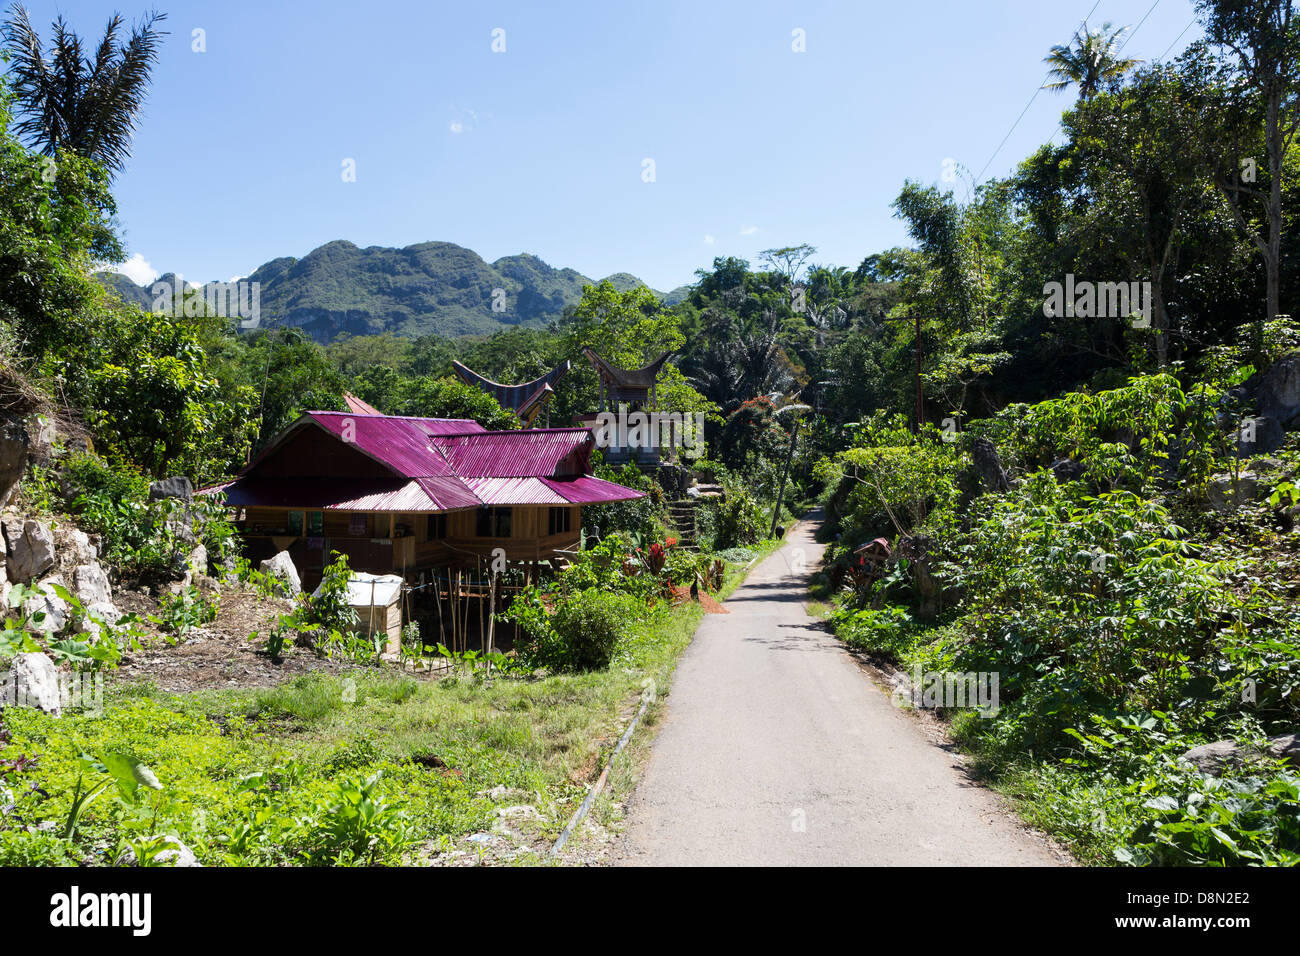 Tana Toraja countryside with traditional houses in Sulawesi, Indonesia - Stock Image